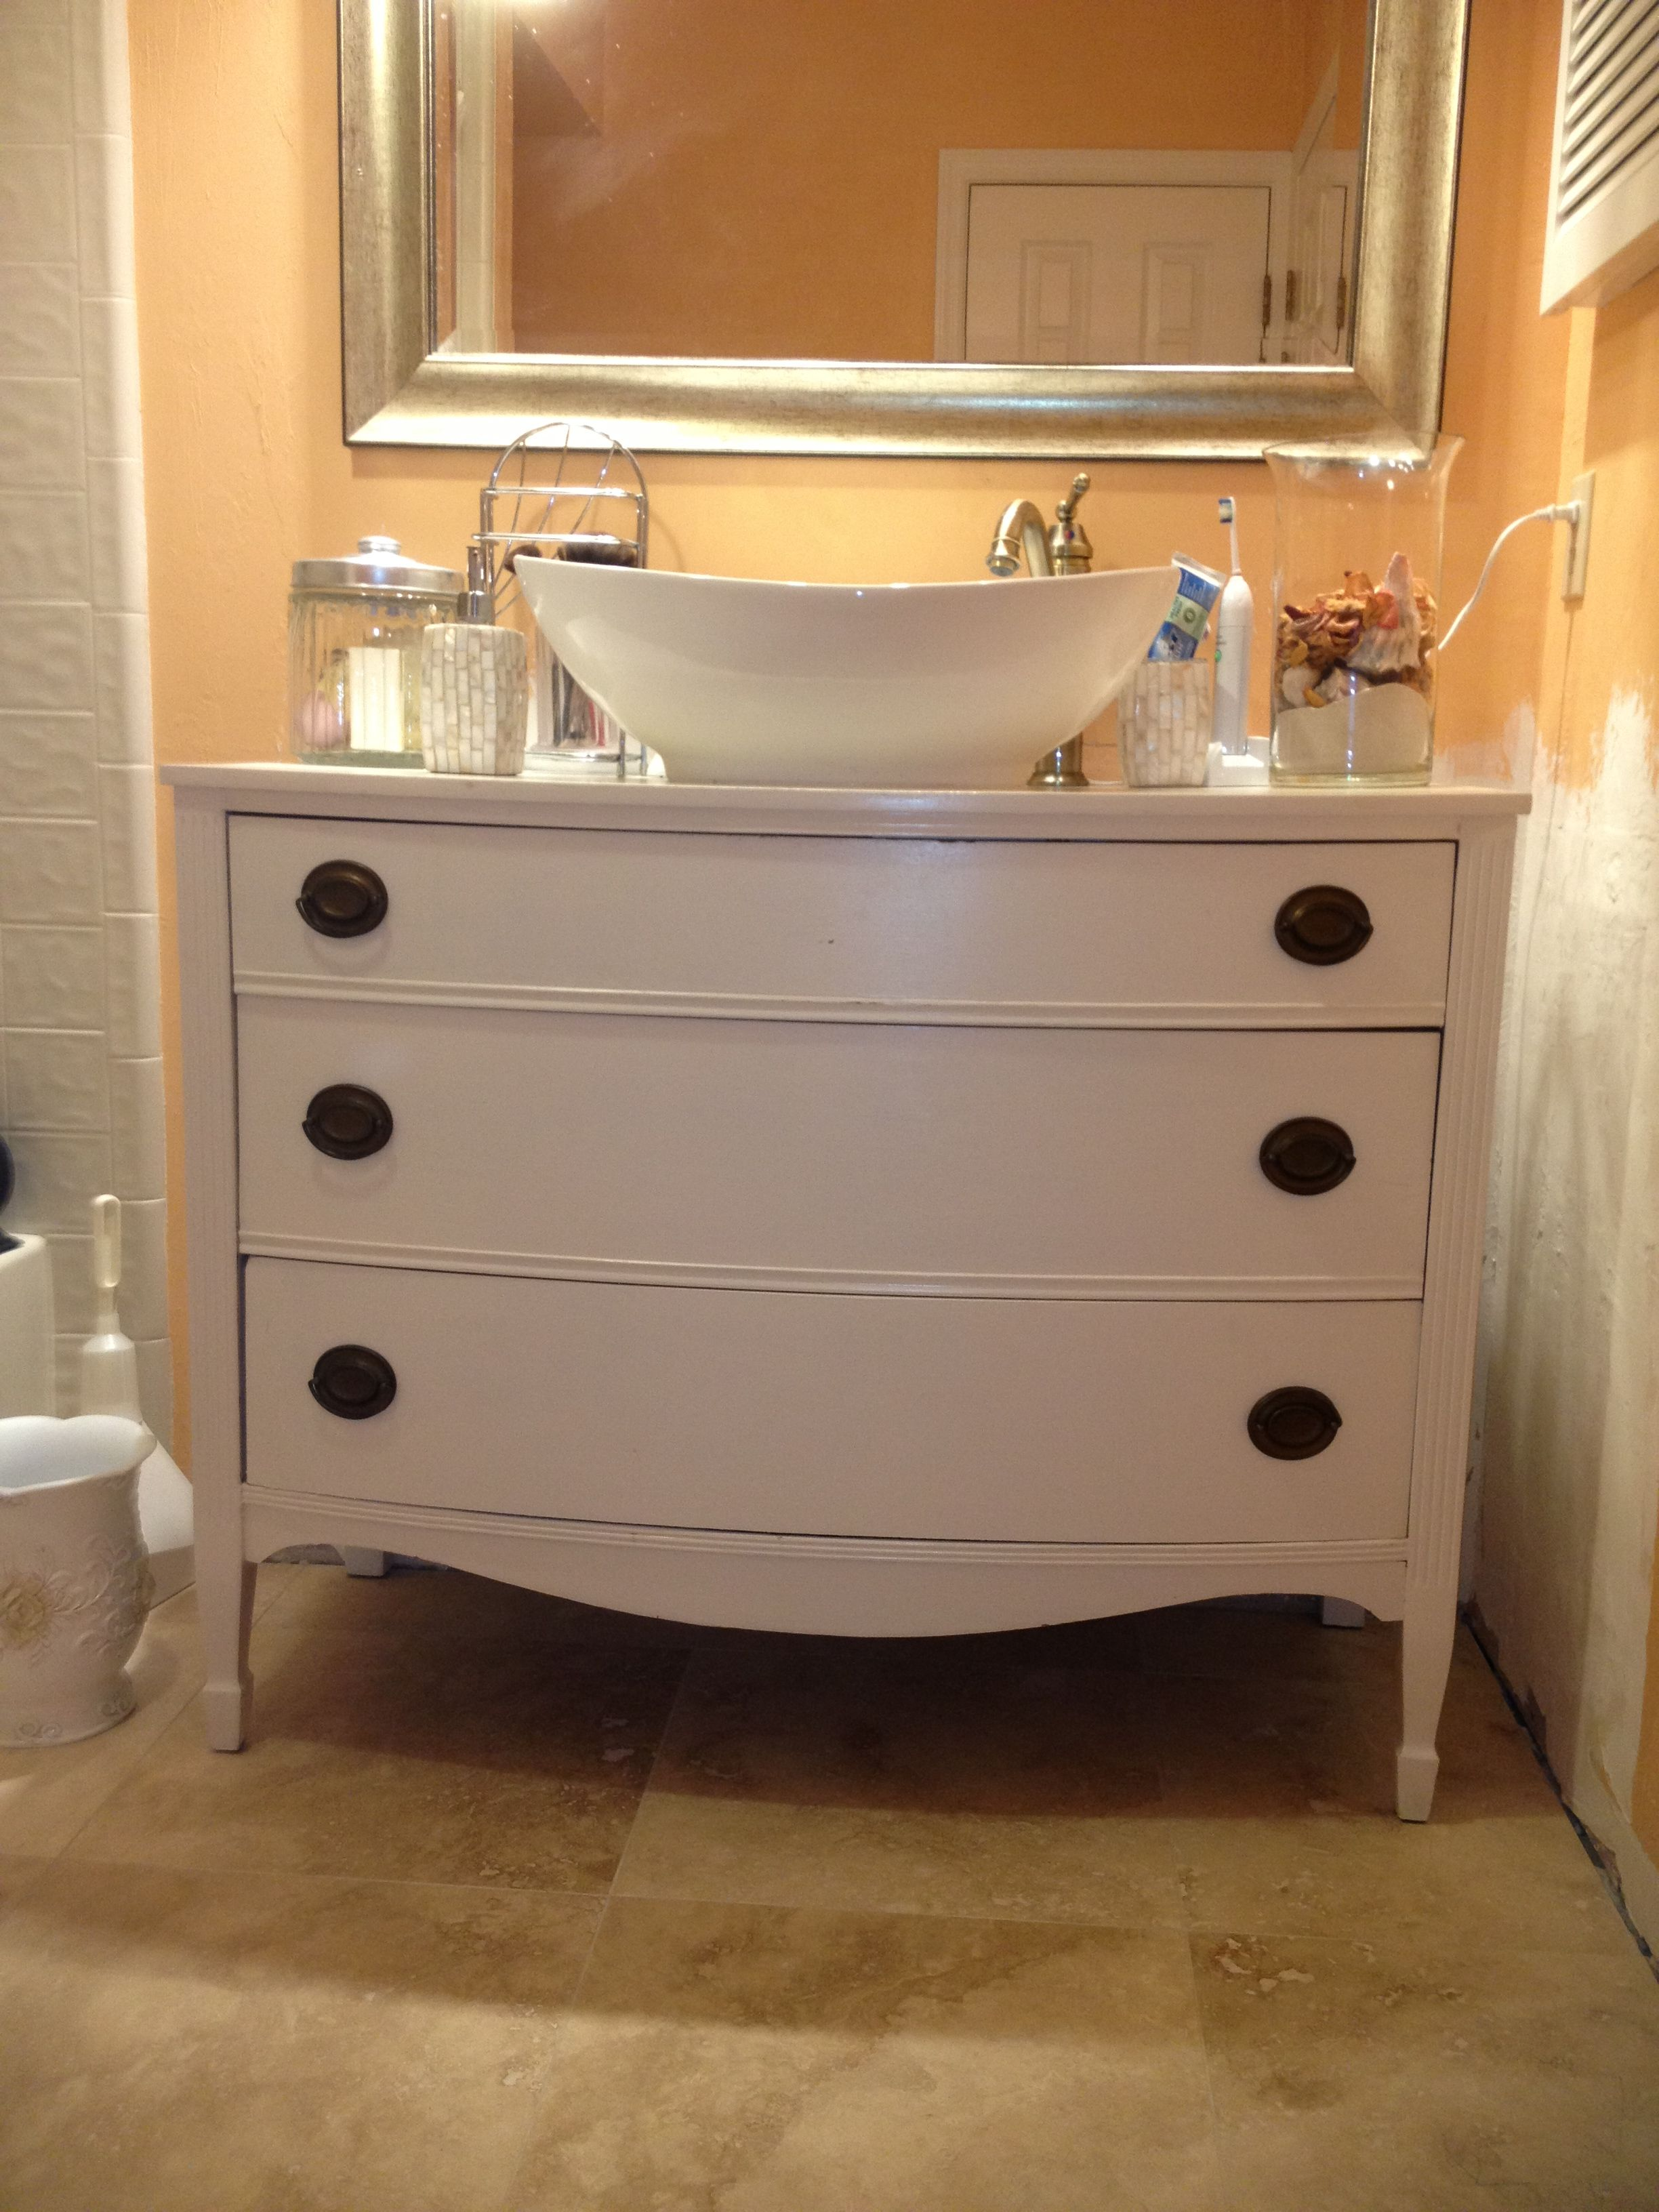 My Diy Bathroom Vanity Redo I Found The Faucet And Sink In Amazon And The Dresser At An Estate S Diy Bathroom Vanity Diy Bathroom Design Bathroom Vanity Redo